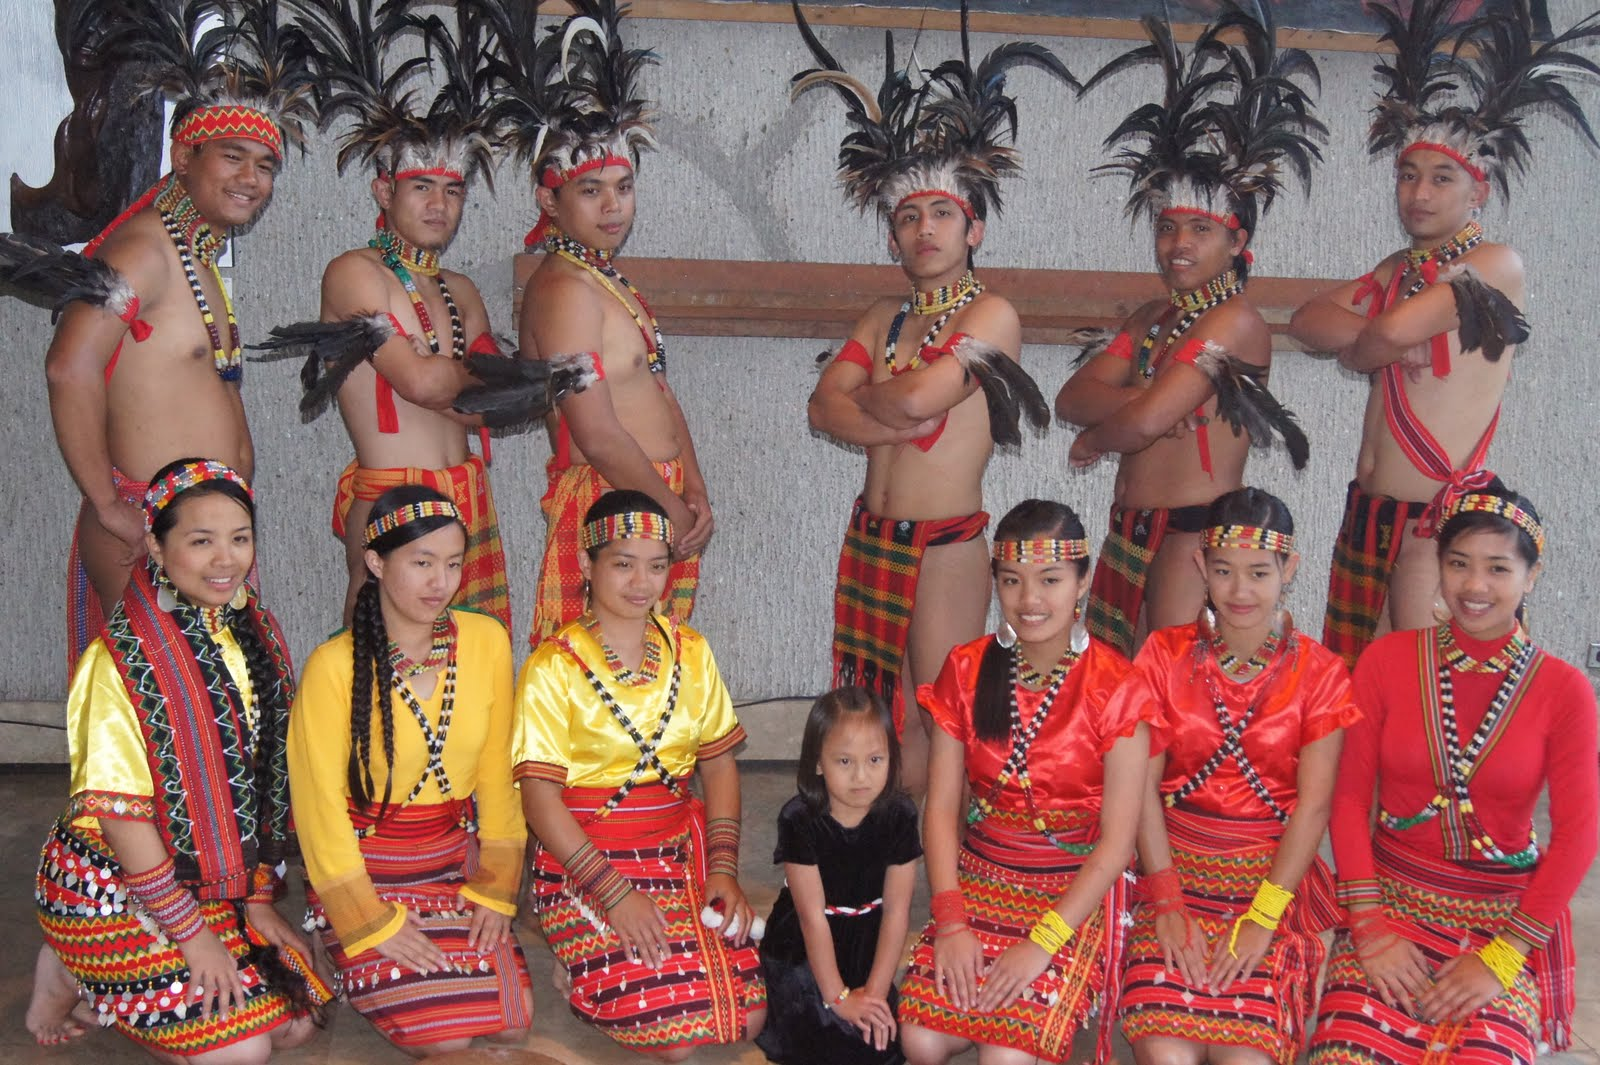 Filipino Cultural Dance Costumes http://theclamorofkalinga.blogspot.com/2012/01/philippine-ethnic-costume.html